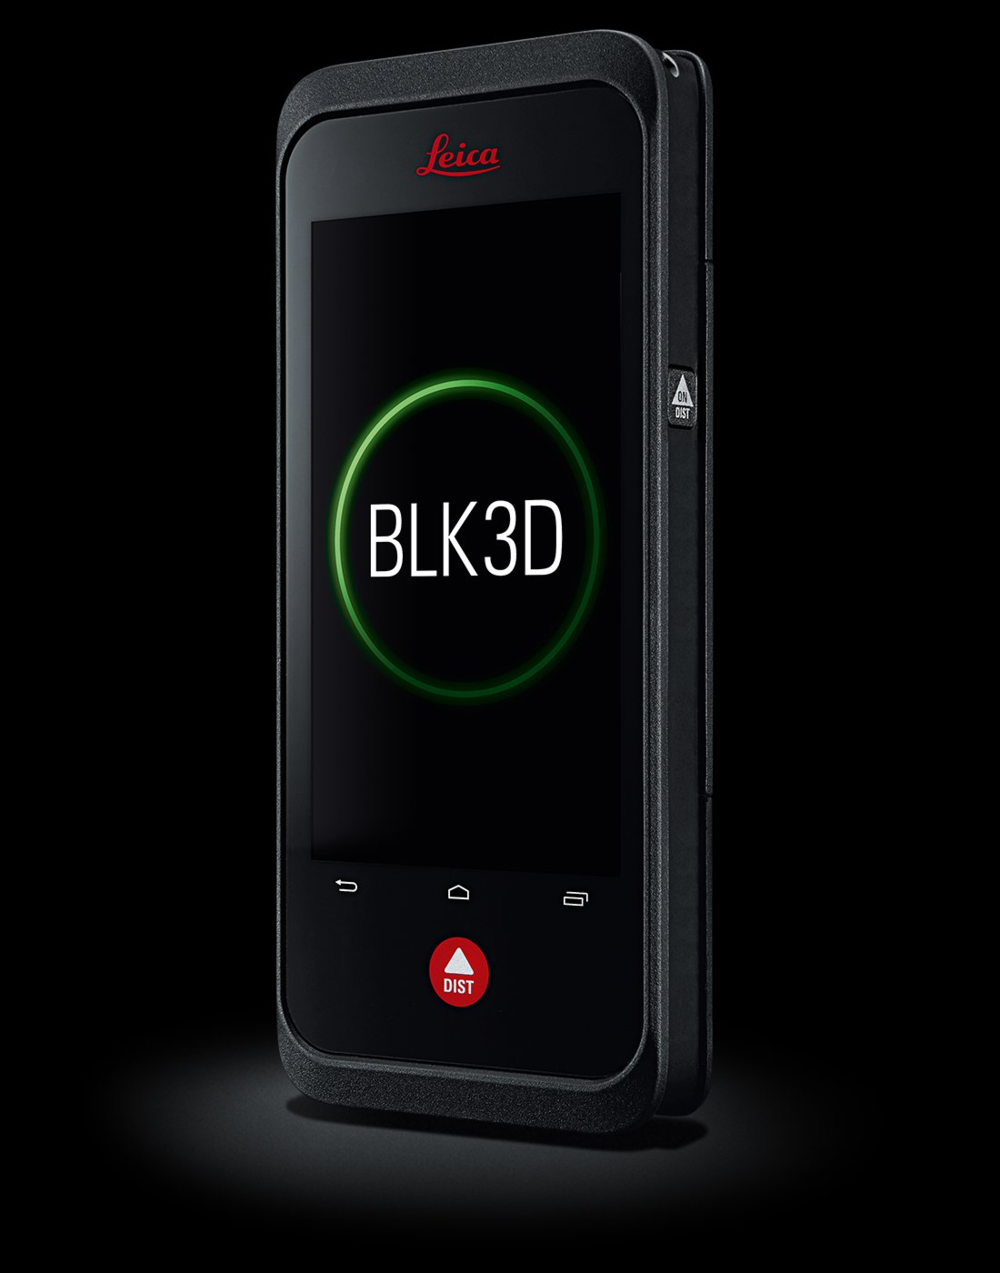 The art of photogrammetry. Simplified. - The BLK3D was created by drawing from our portfolio of technologies, miniaturizing them and simplifying them to deliver unprecedented performance in a push button imaging device.